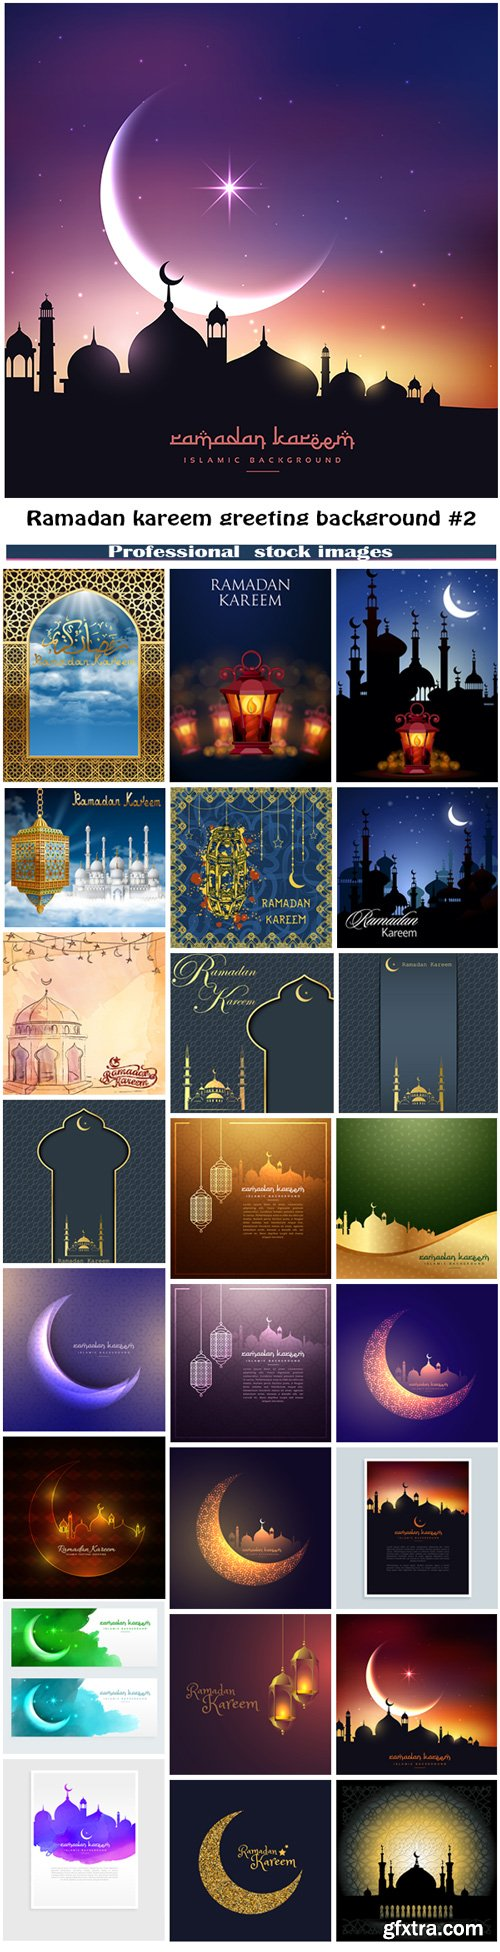 Ramadan kareem greeting background #2